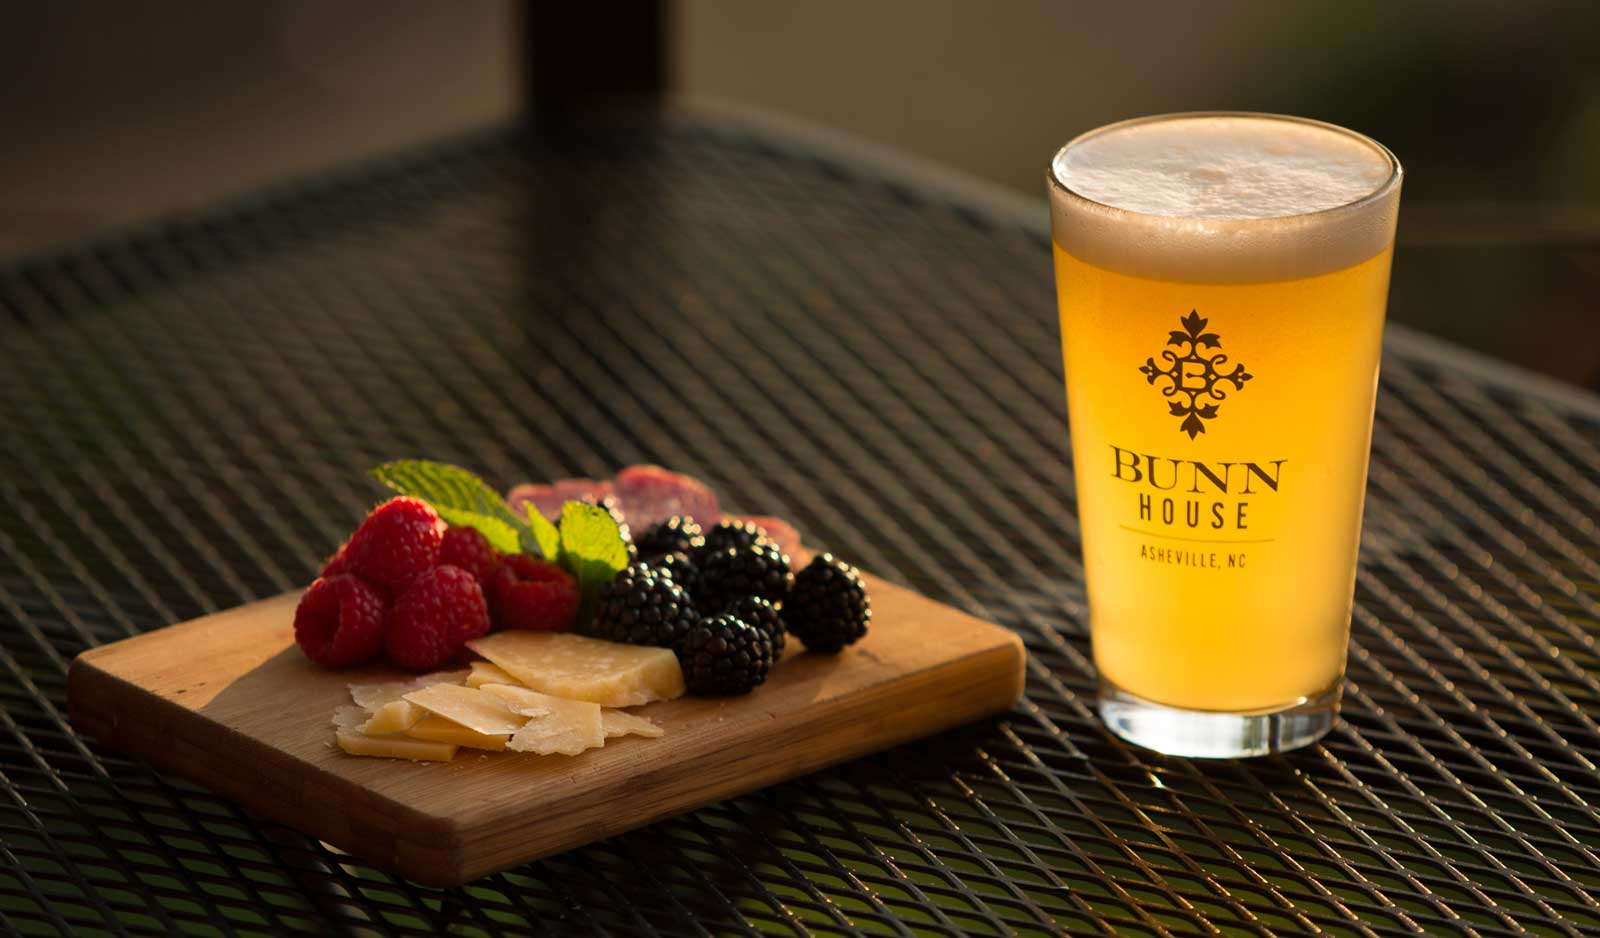 Pint glass with Bunn House Boutique hotel logo has golden beer glowing in warm light waits to be drank, and a cheese board with cheese and fruit waits to be eaten.